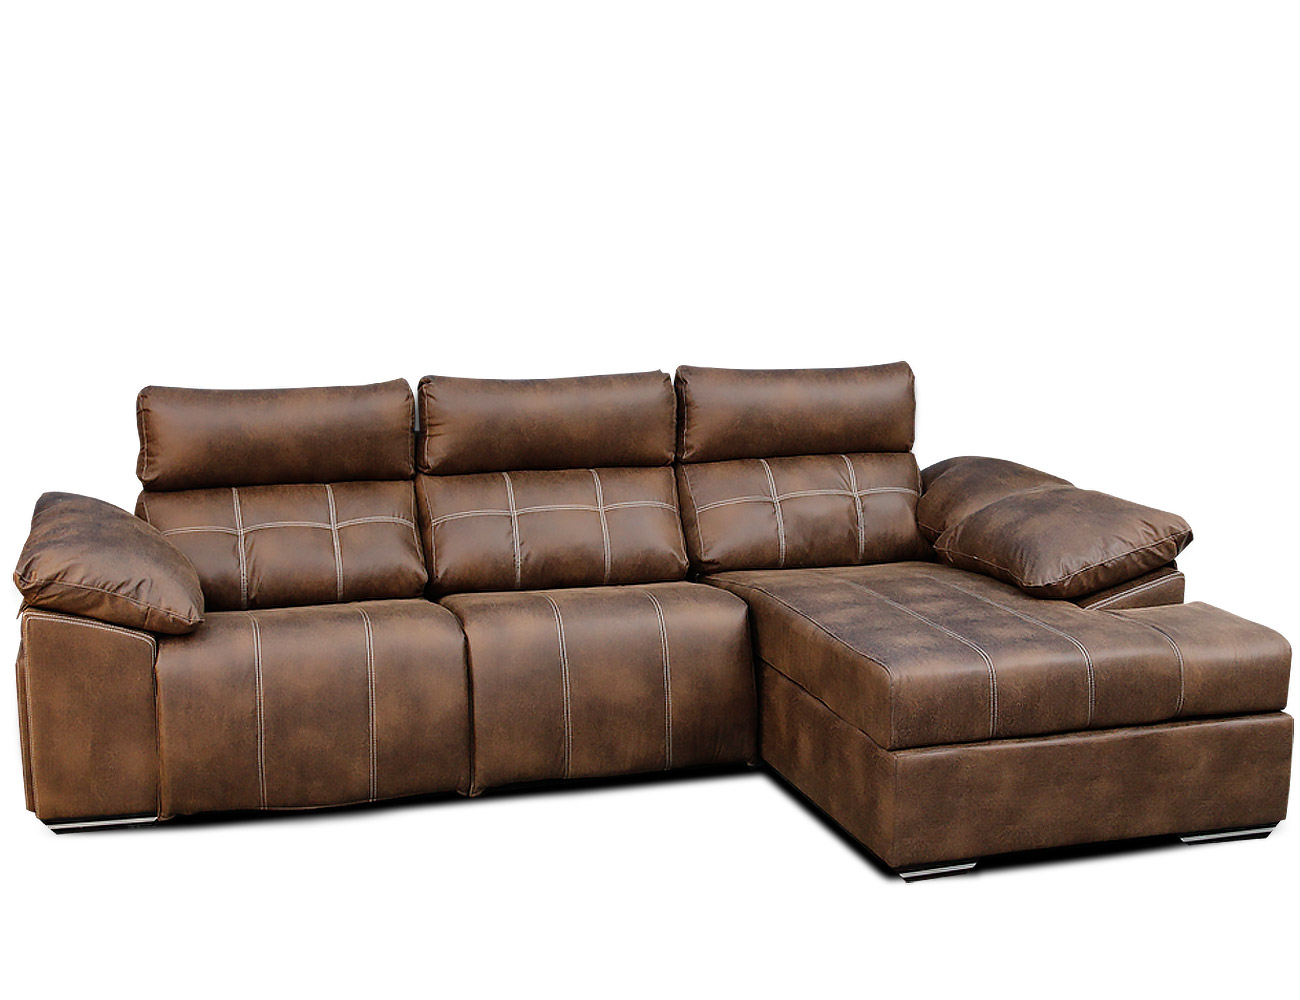 Sofa chaiselongue relax electrico 2 motores